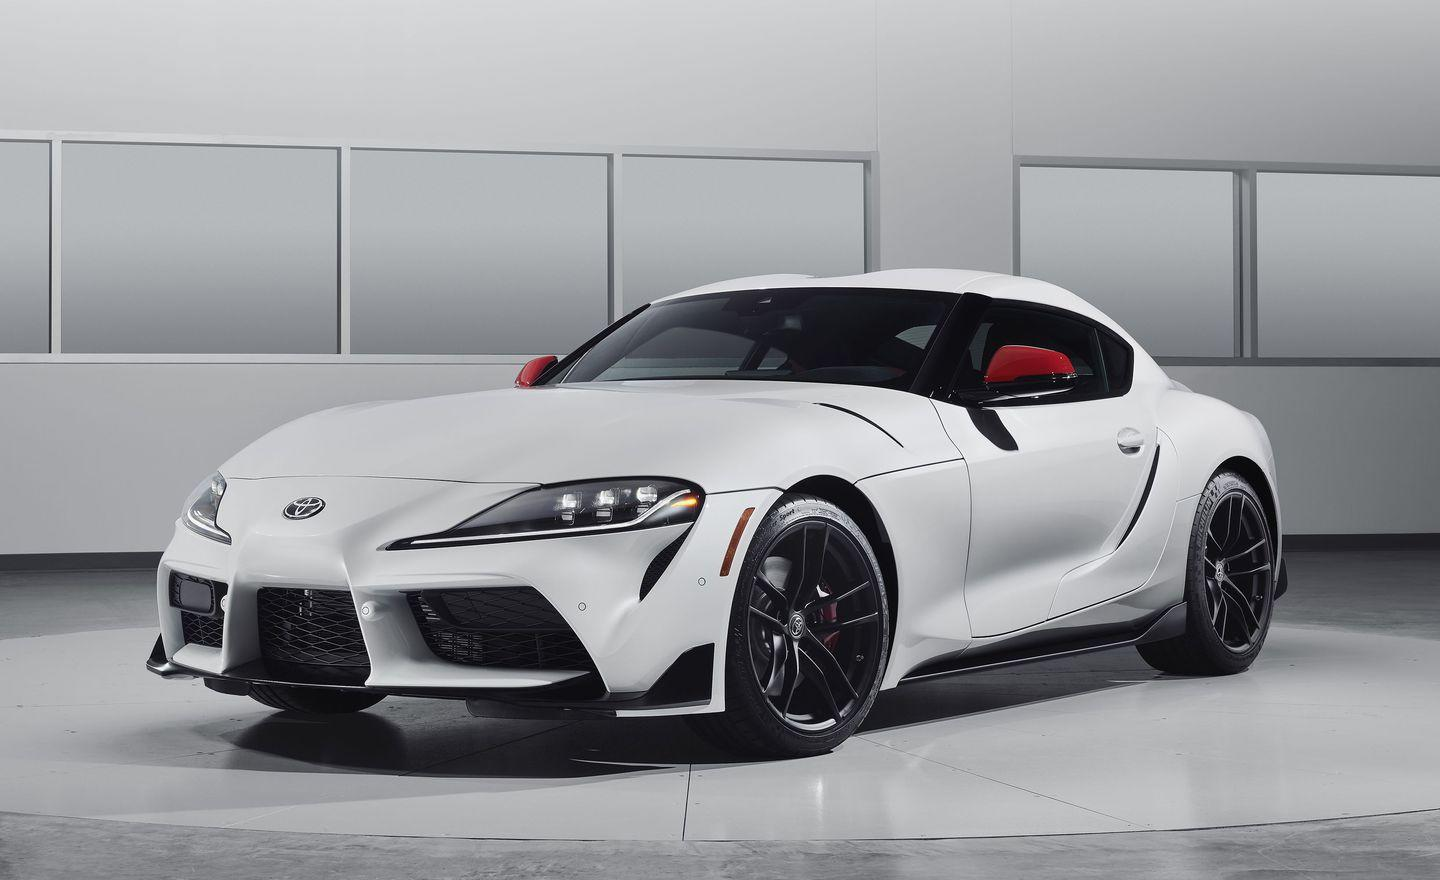 d09d6b5902cc Just About Everything You Need To Know About the 2020 Toyota Supra